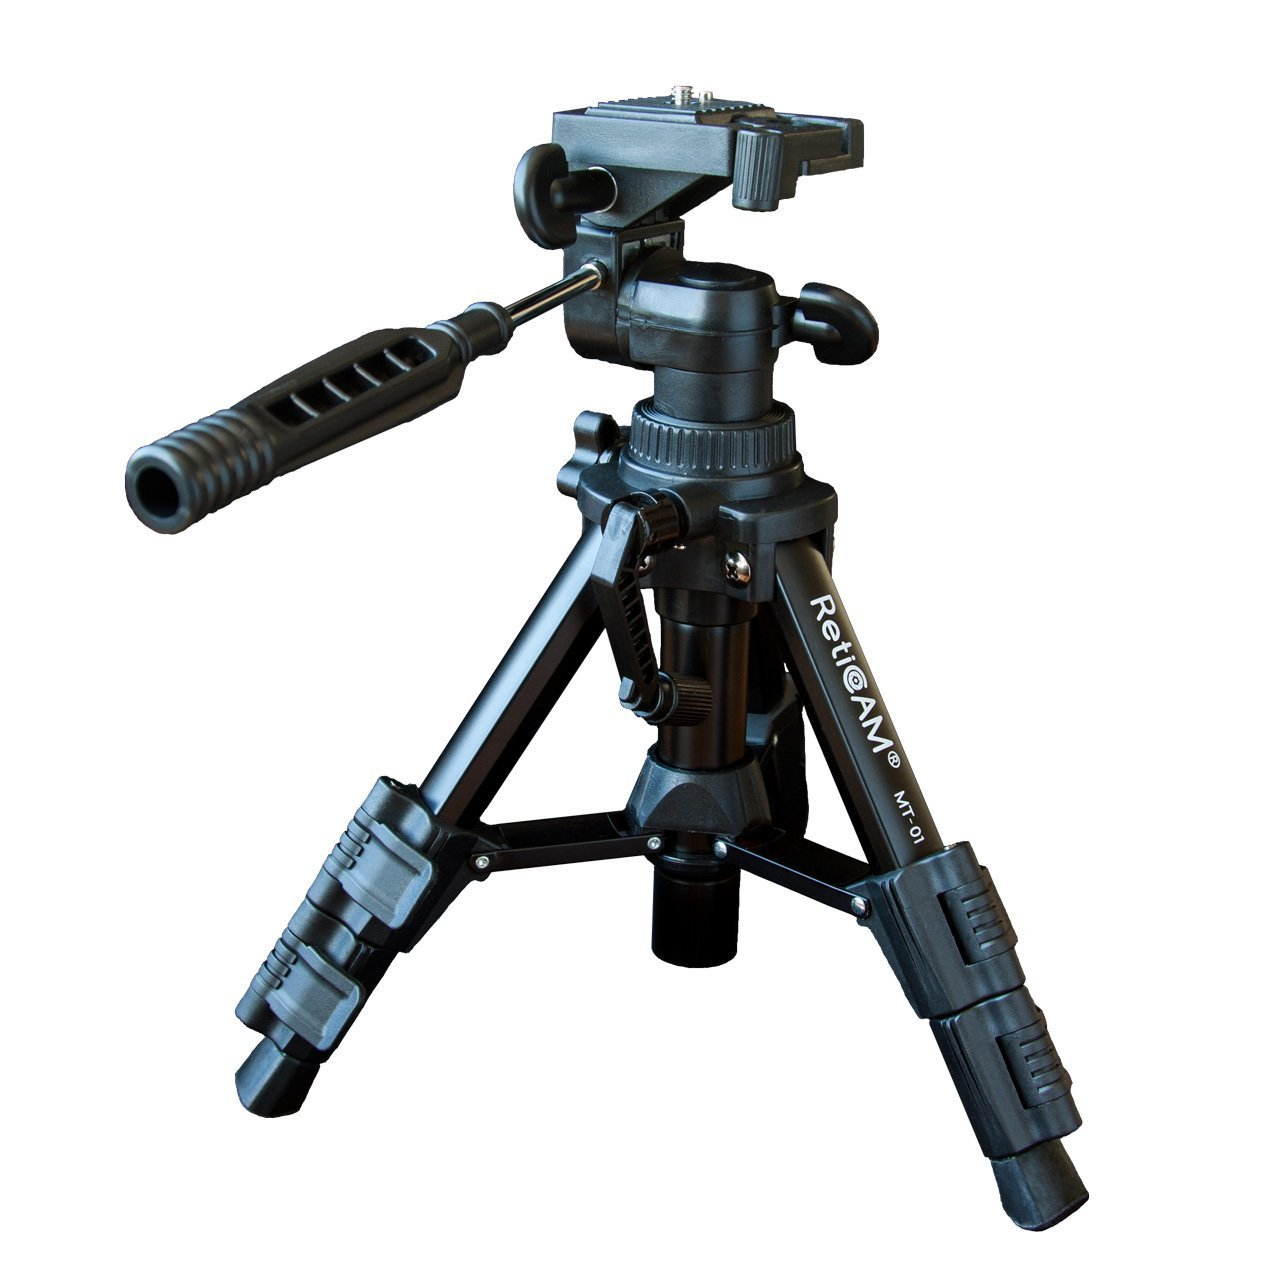 BWAM-elck Travel Tripod Monopod Aluminum Alloy Mini Tripod Color : Black, Size : One Size Desktop Tabletop Stand Compact Tripod for Projector Camera Ideal for Travel and Work